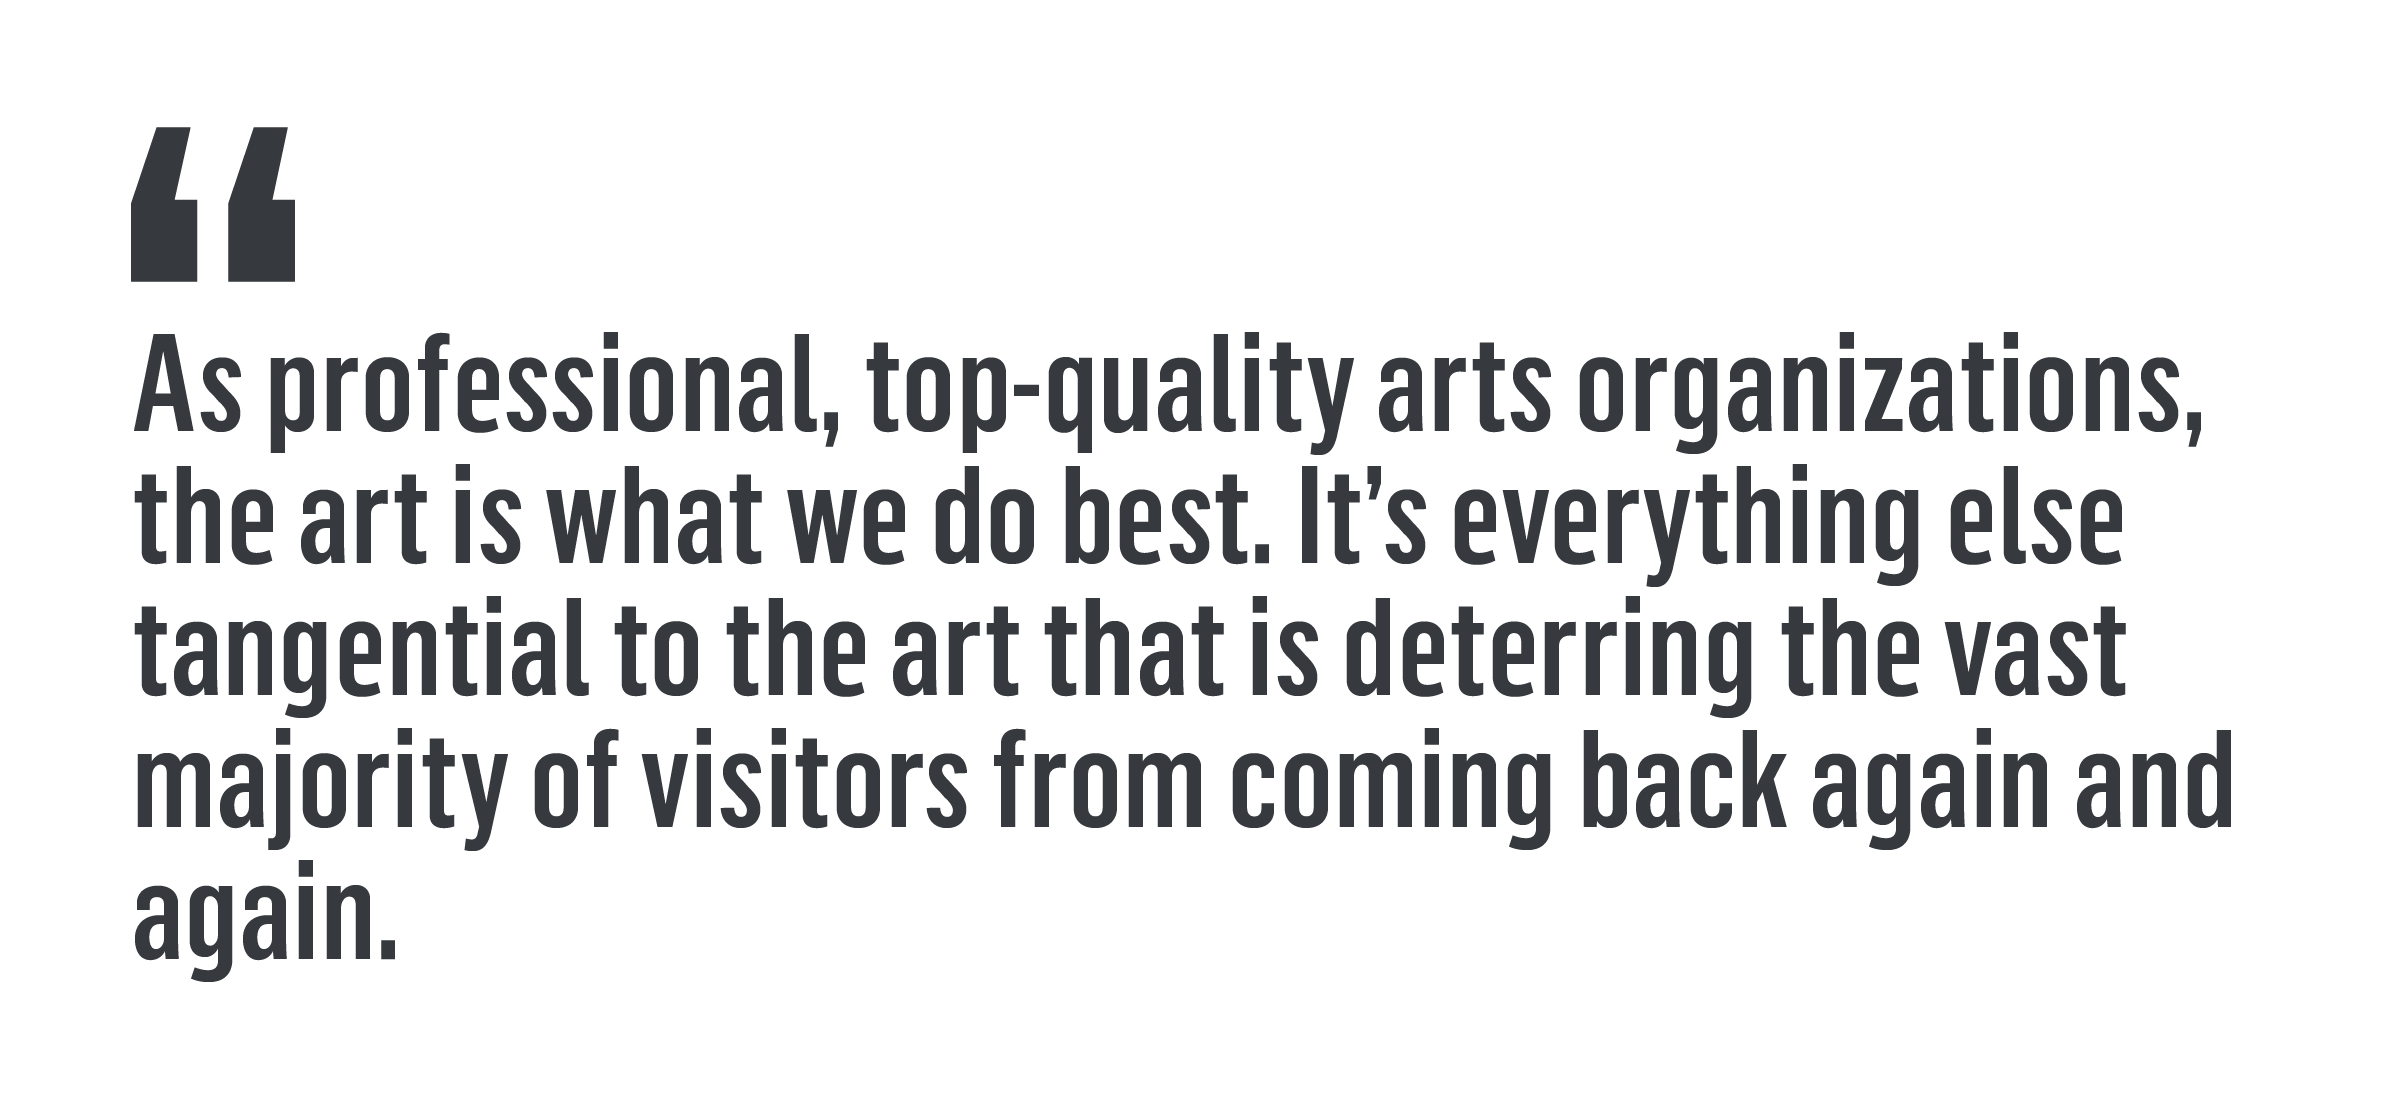 'As professional, top-quality arts organizations, the art is what we do best. It's everything else tangential to the art that is deterring the vast majority of visitors from coming back again and again.'